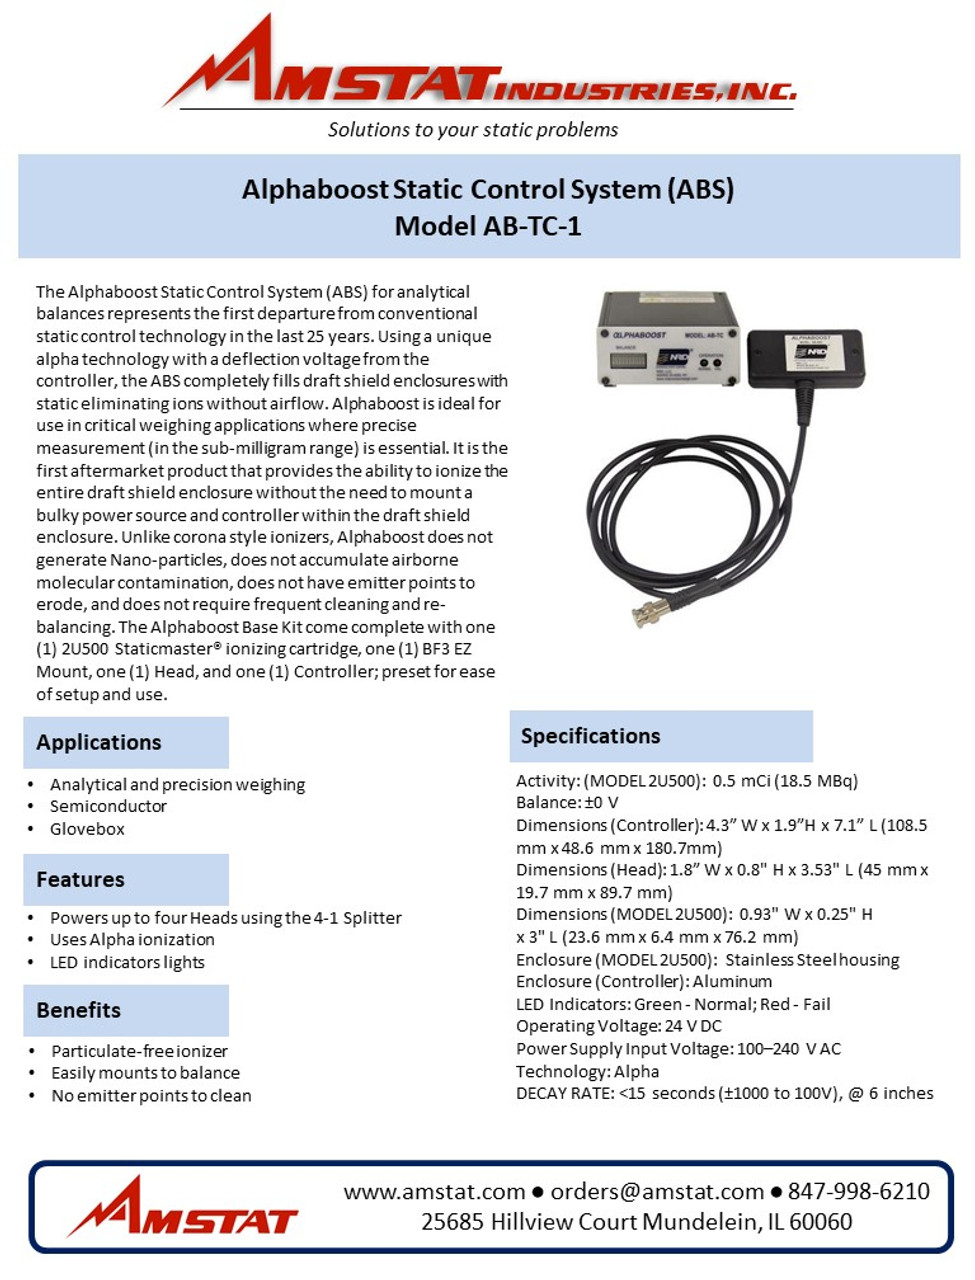 Alphaboost Static Control System (ABS)